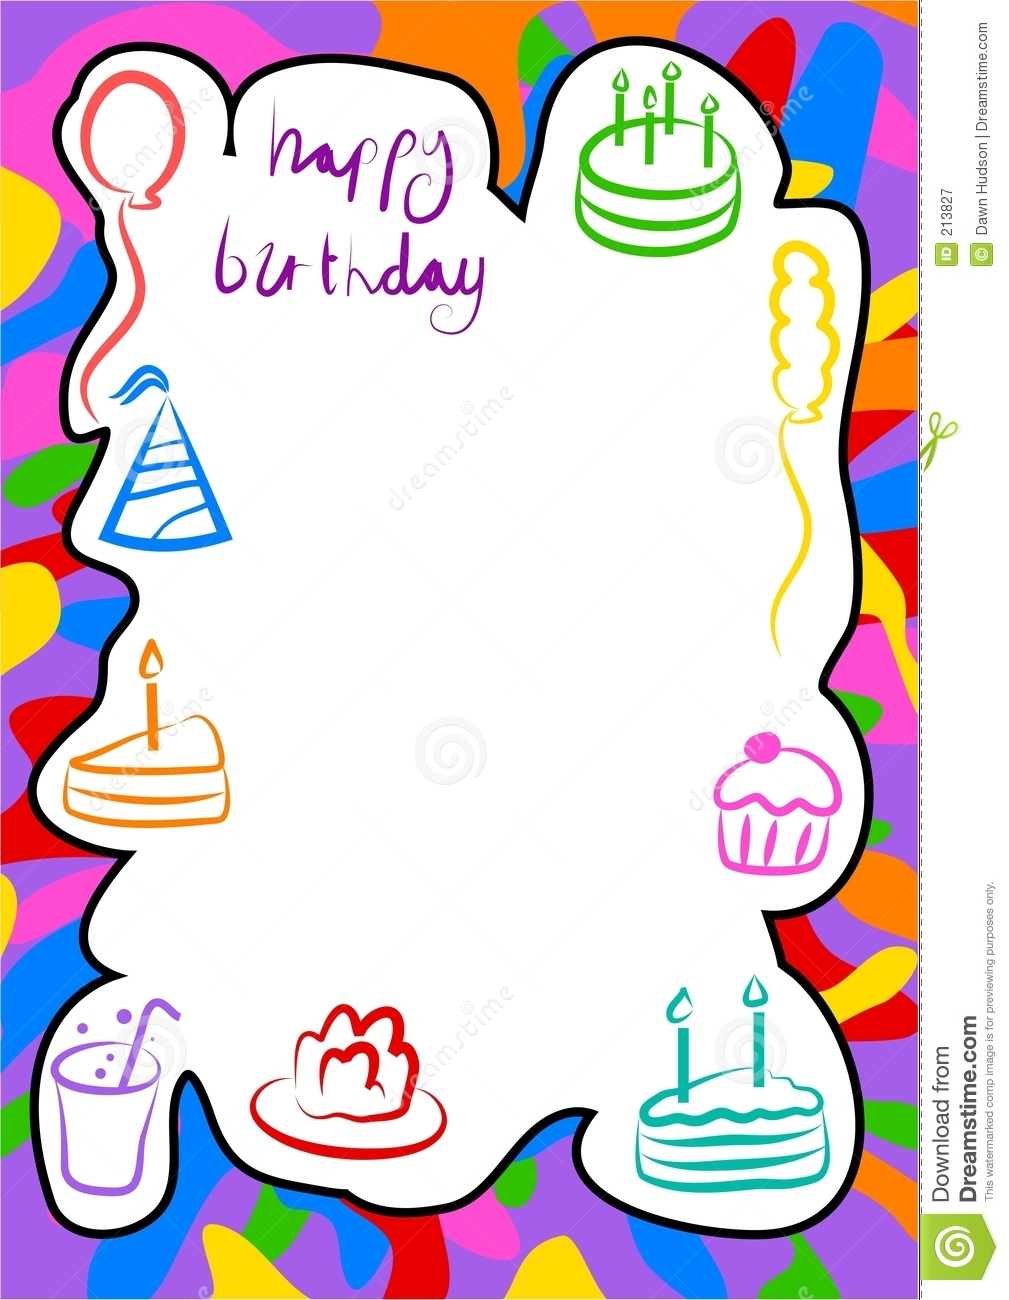 birthday border stock vector illustration of abstract 213827